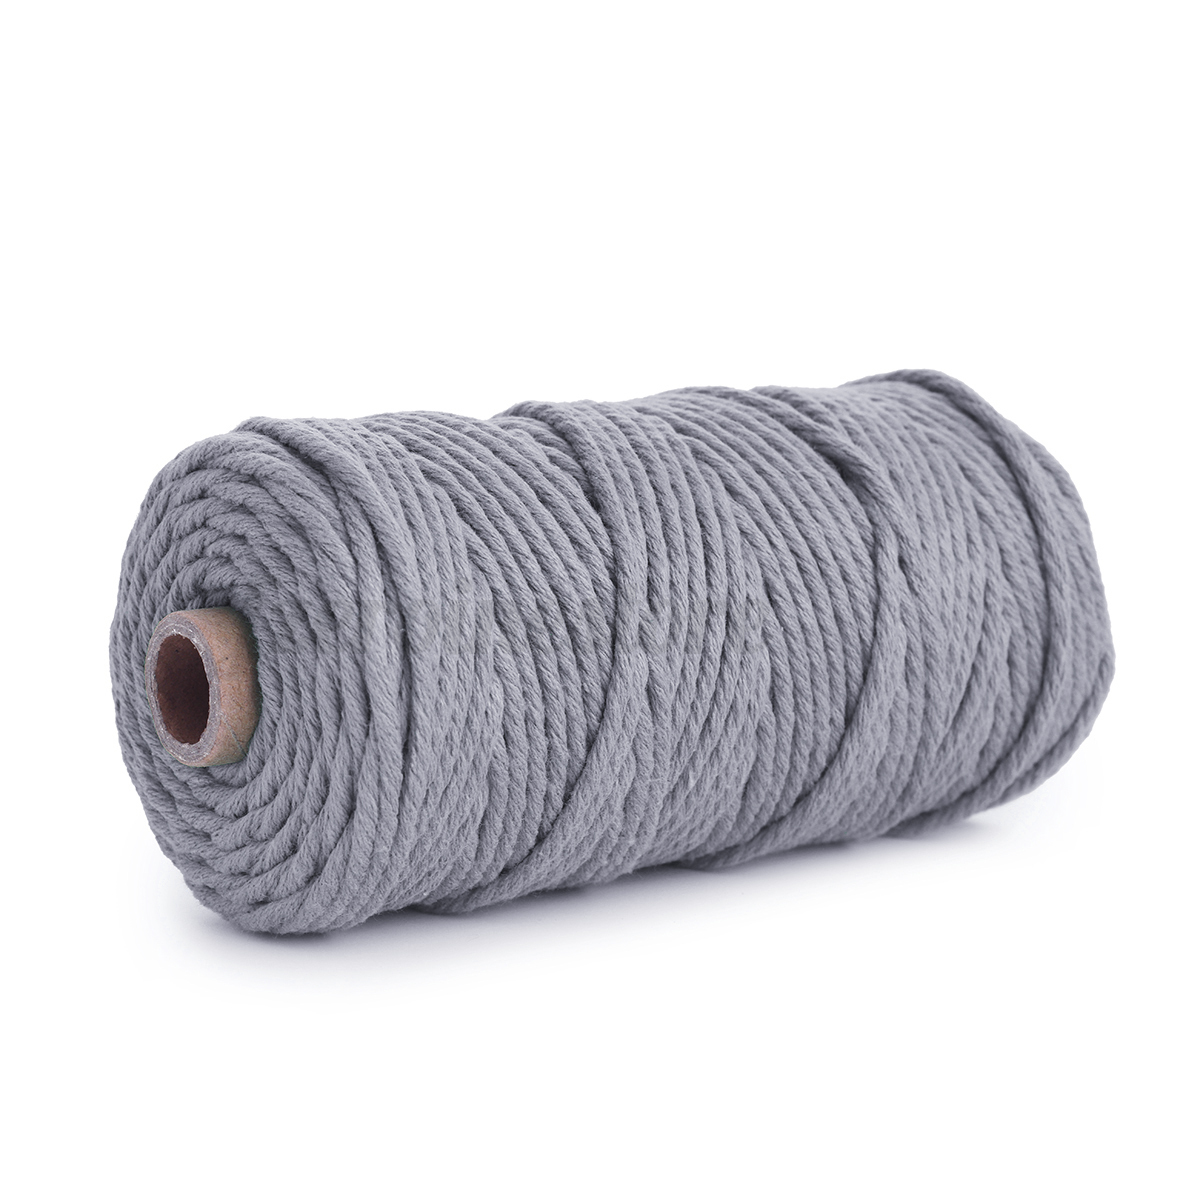 5-Color-3mm-100m-Natural-Twisted-Cotton-Cord-Rope-Macrame-String-DIY-Craft thumbnail 10